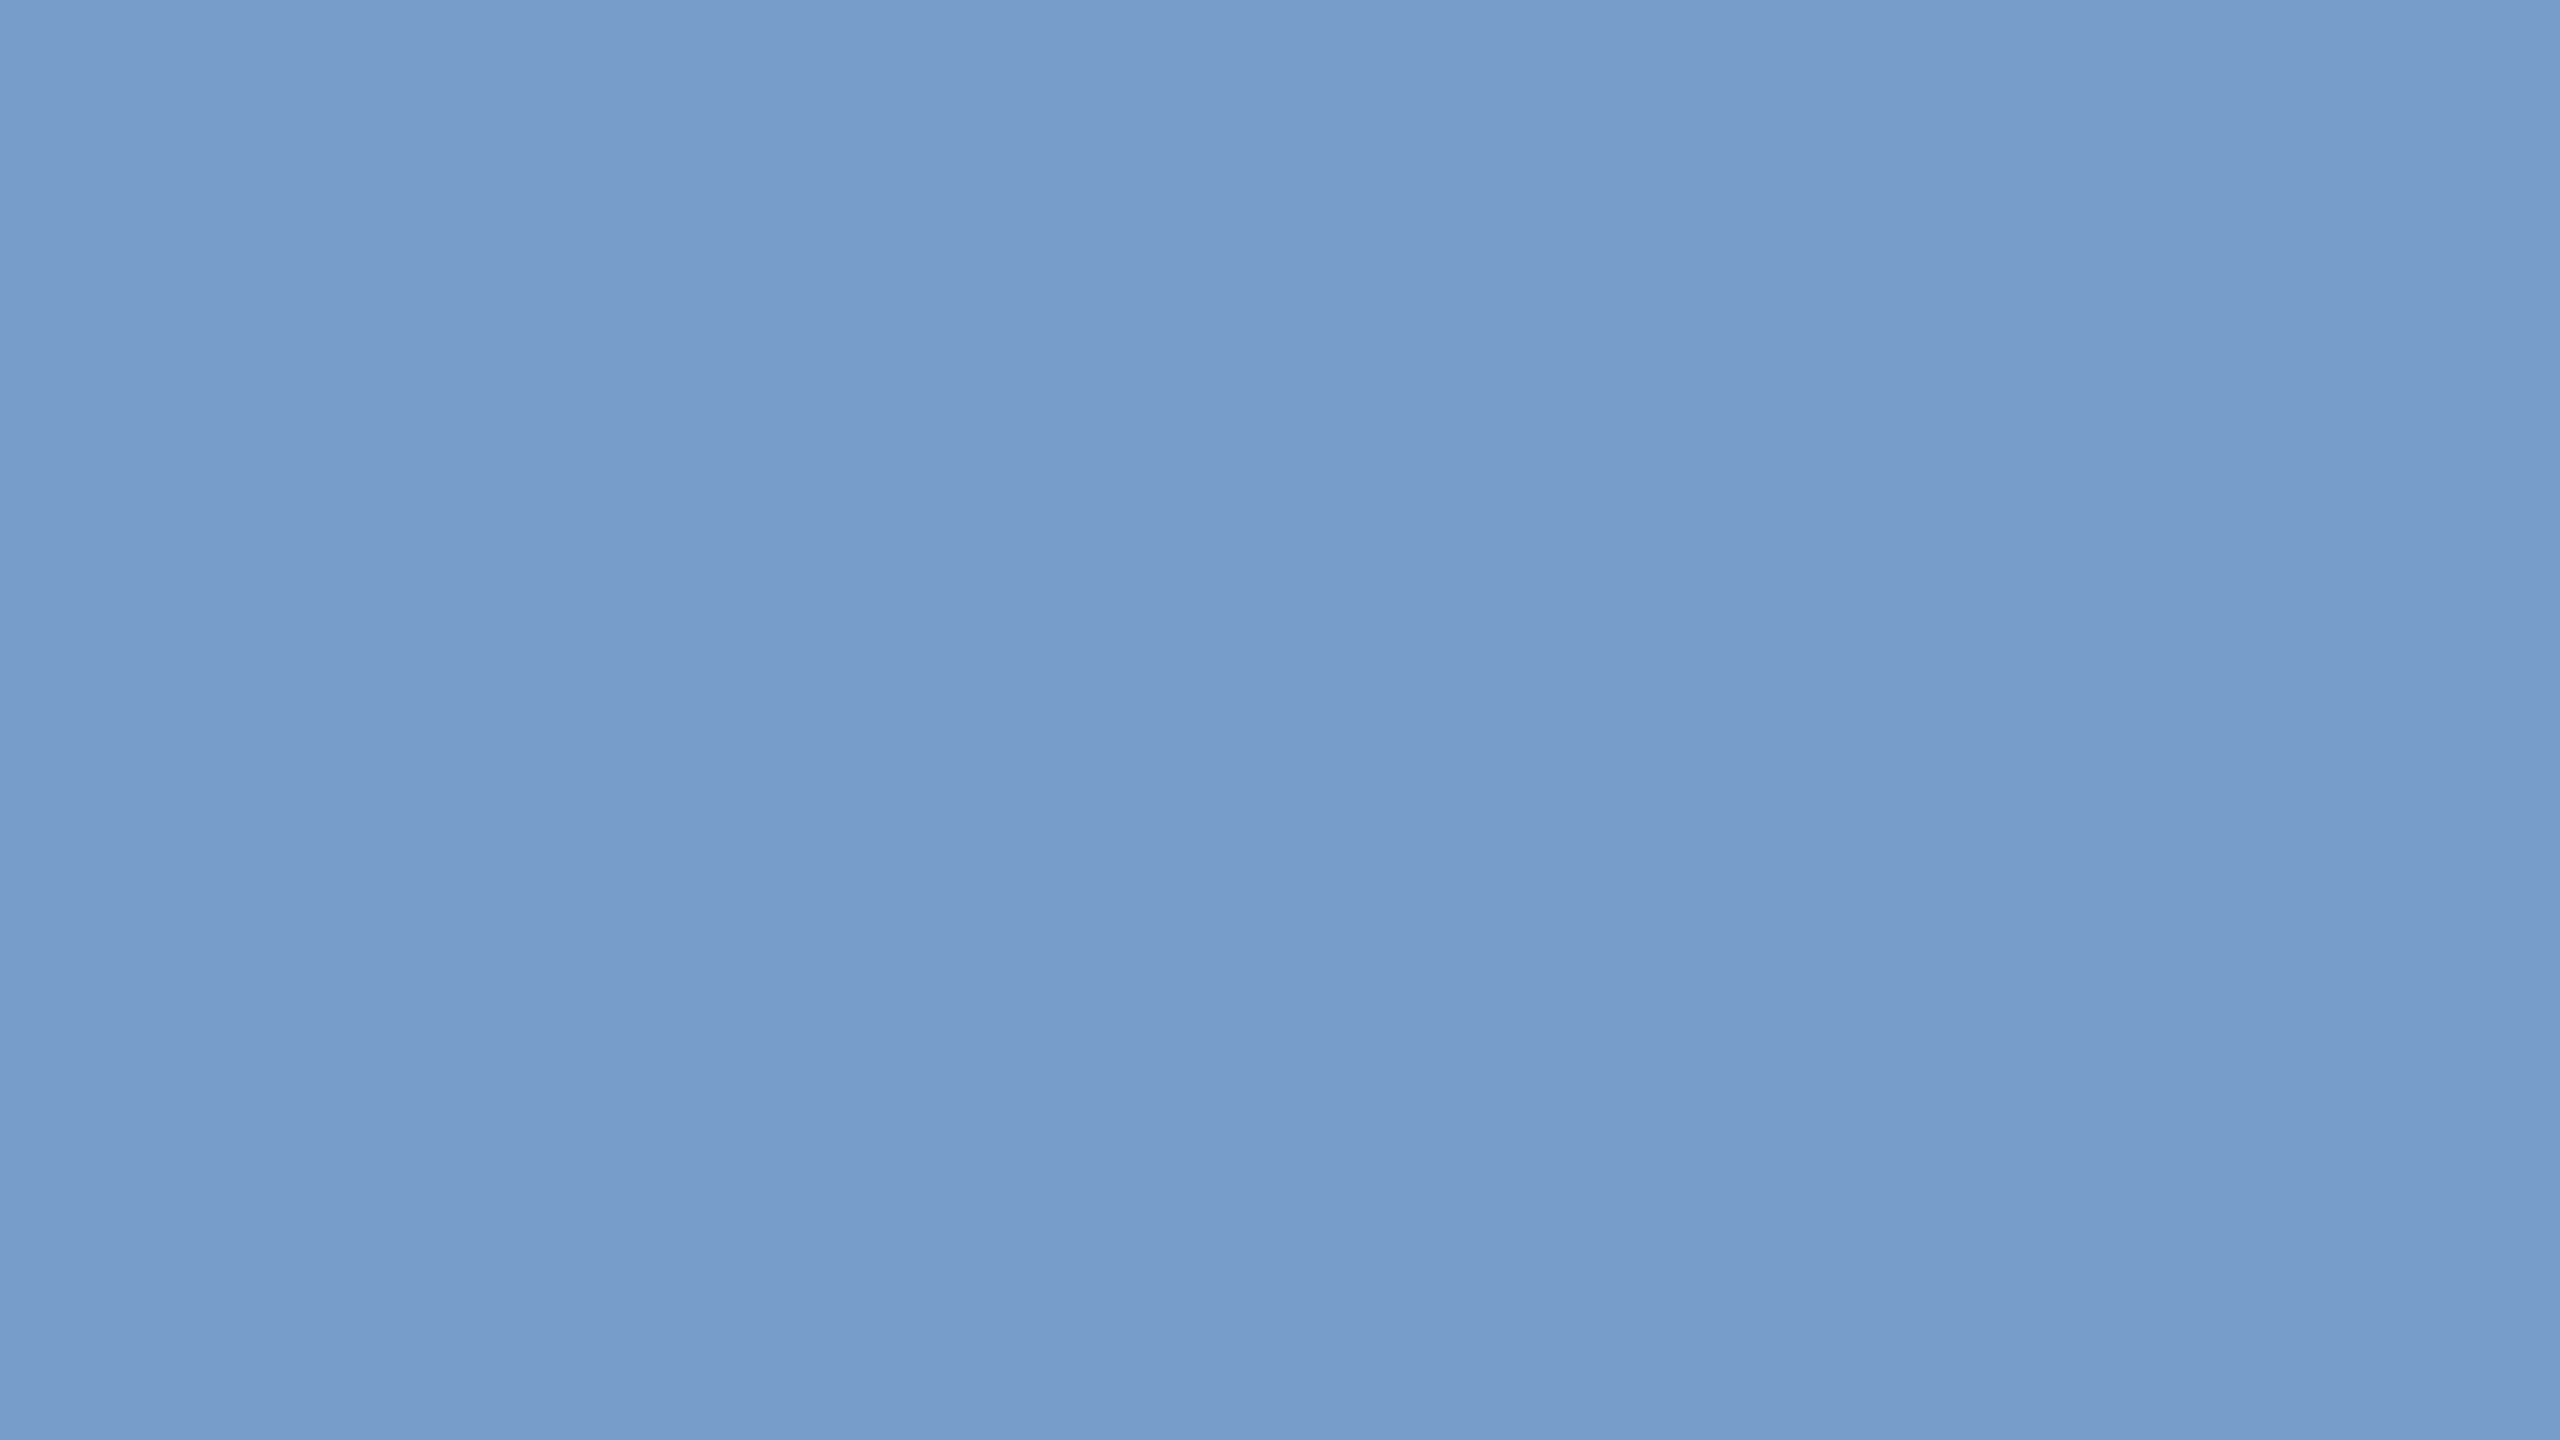 2560x1440 Dark Pastel Blue Solid Color Background